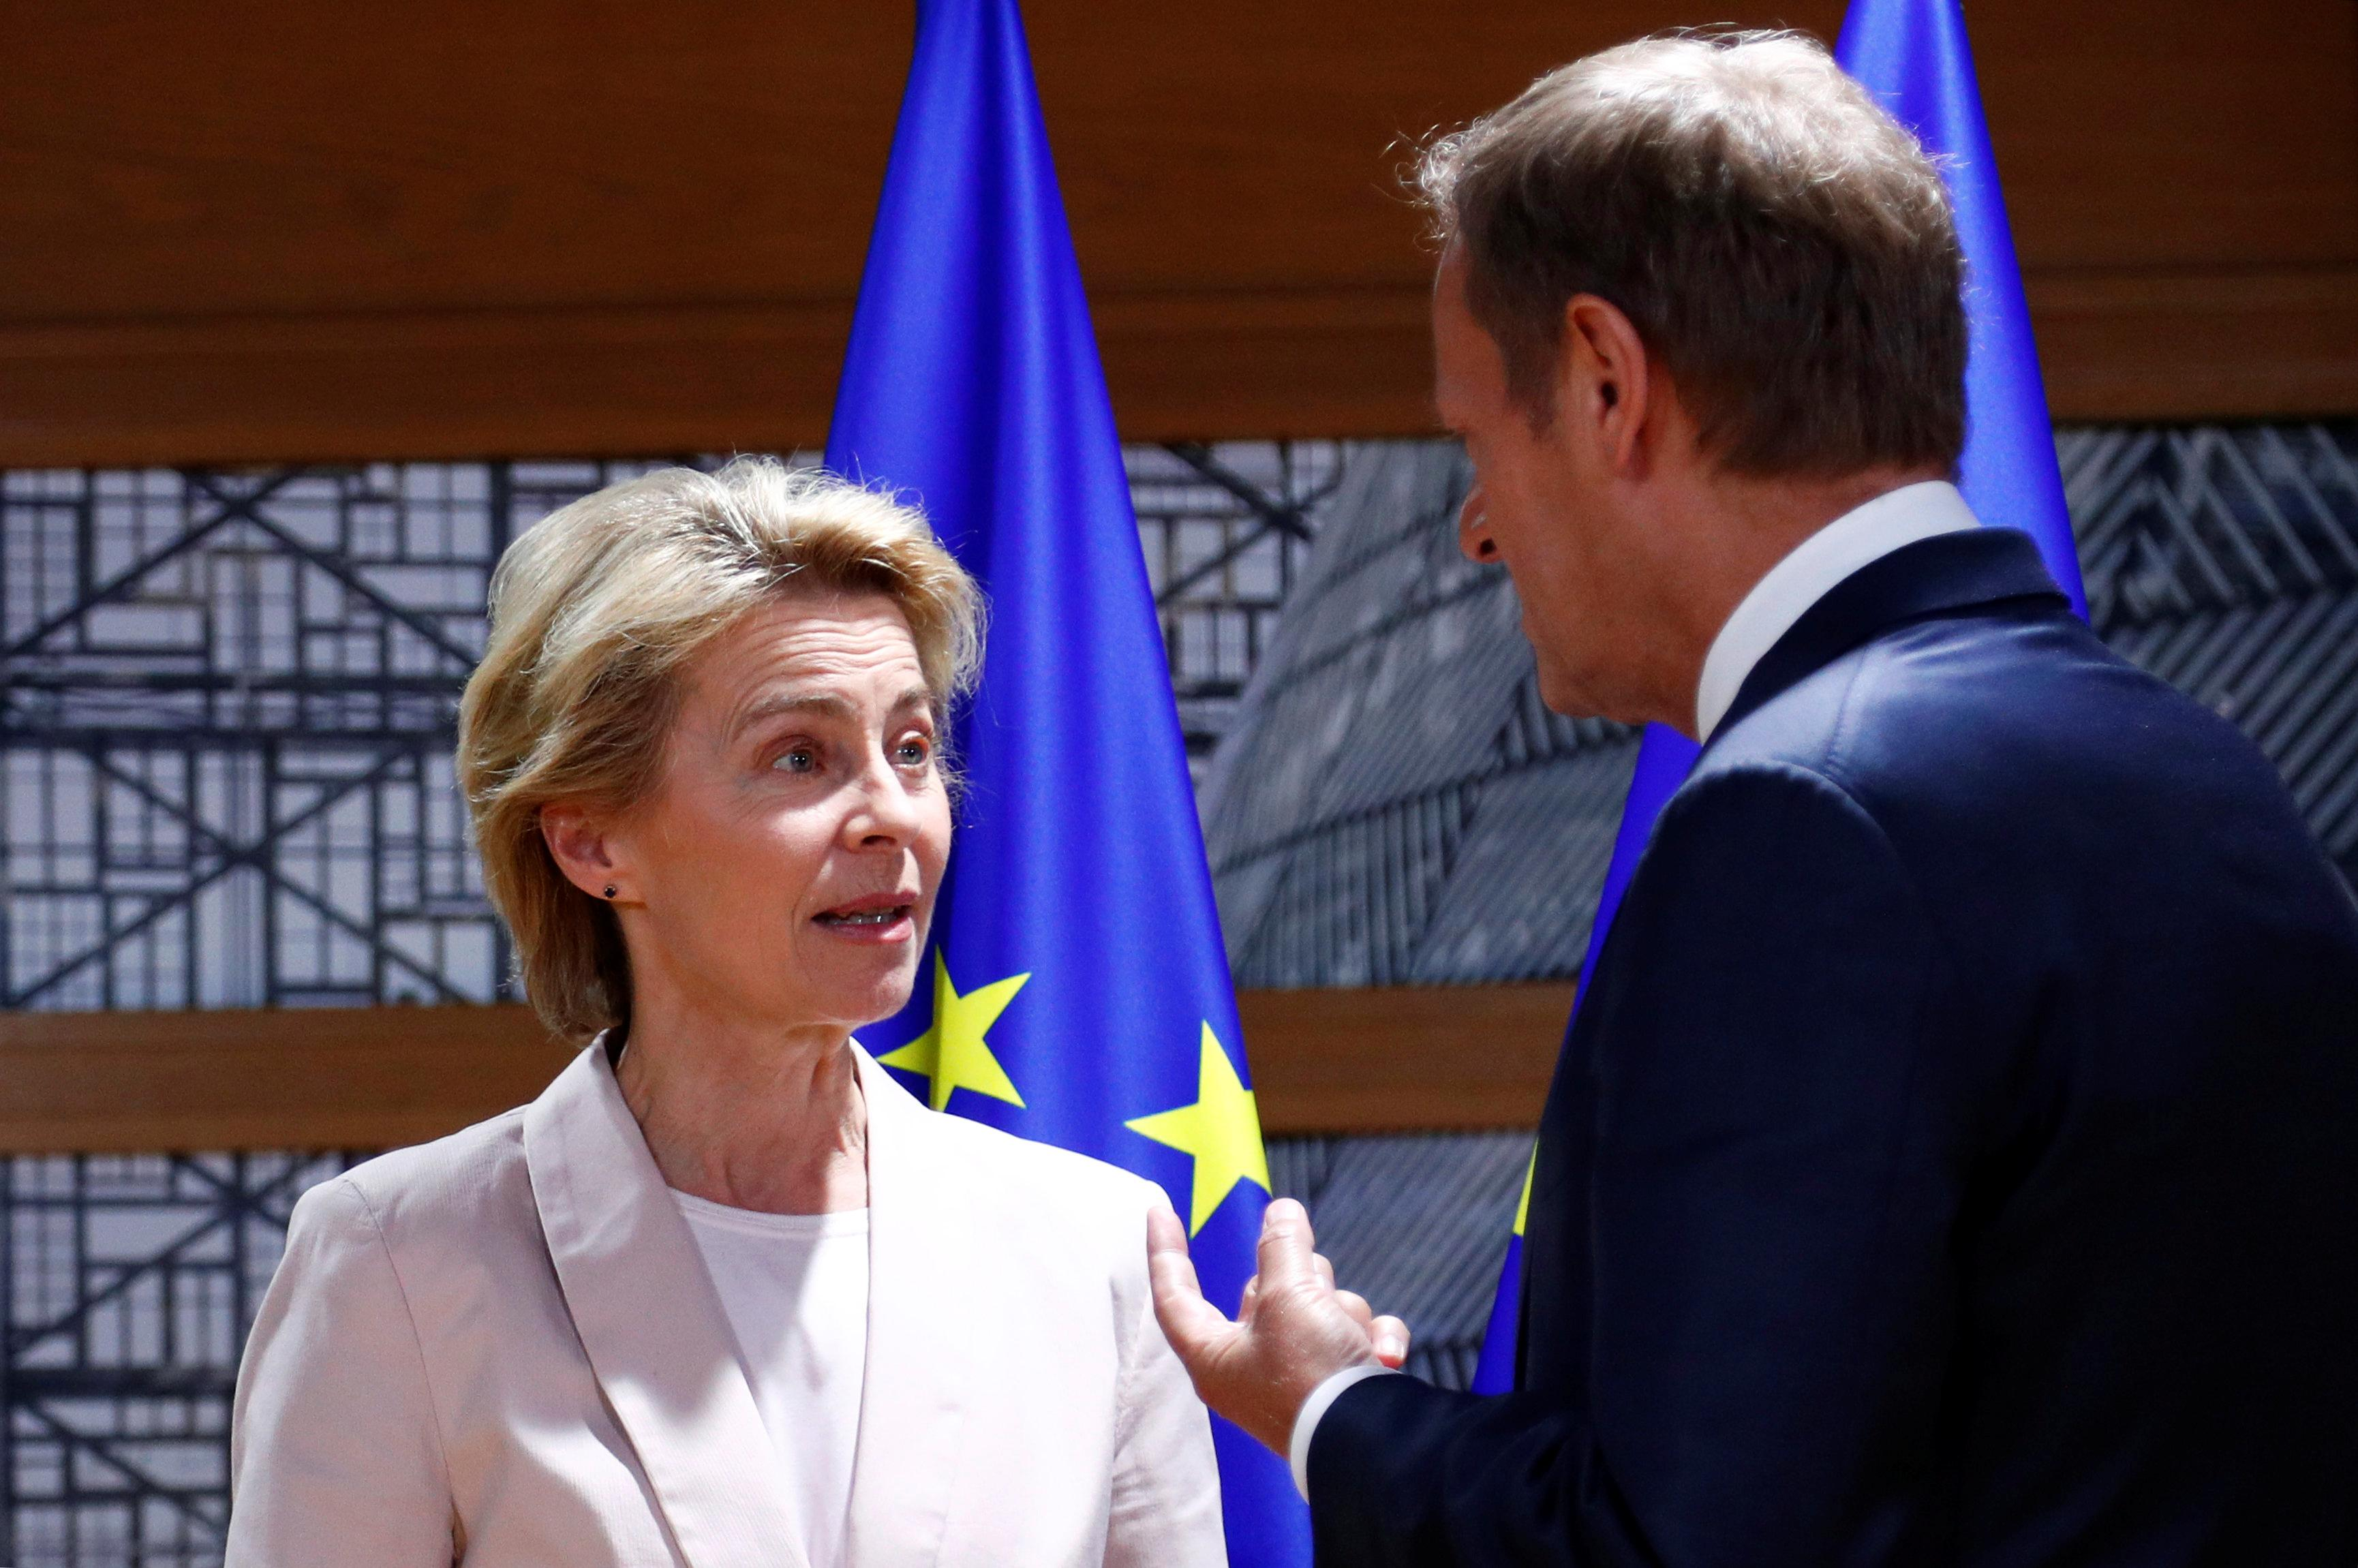 EU Commission nominee hopes Britain would stay, open to Balkans